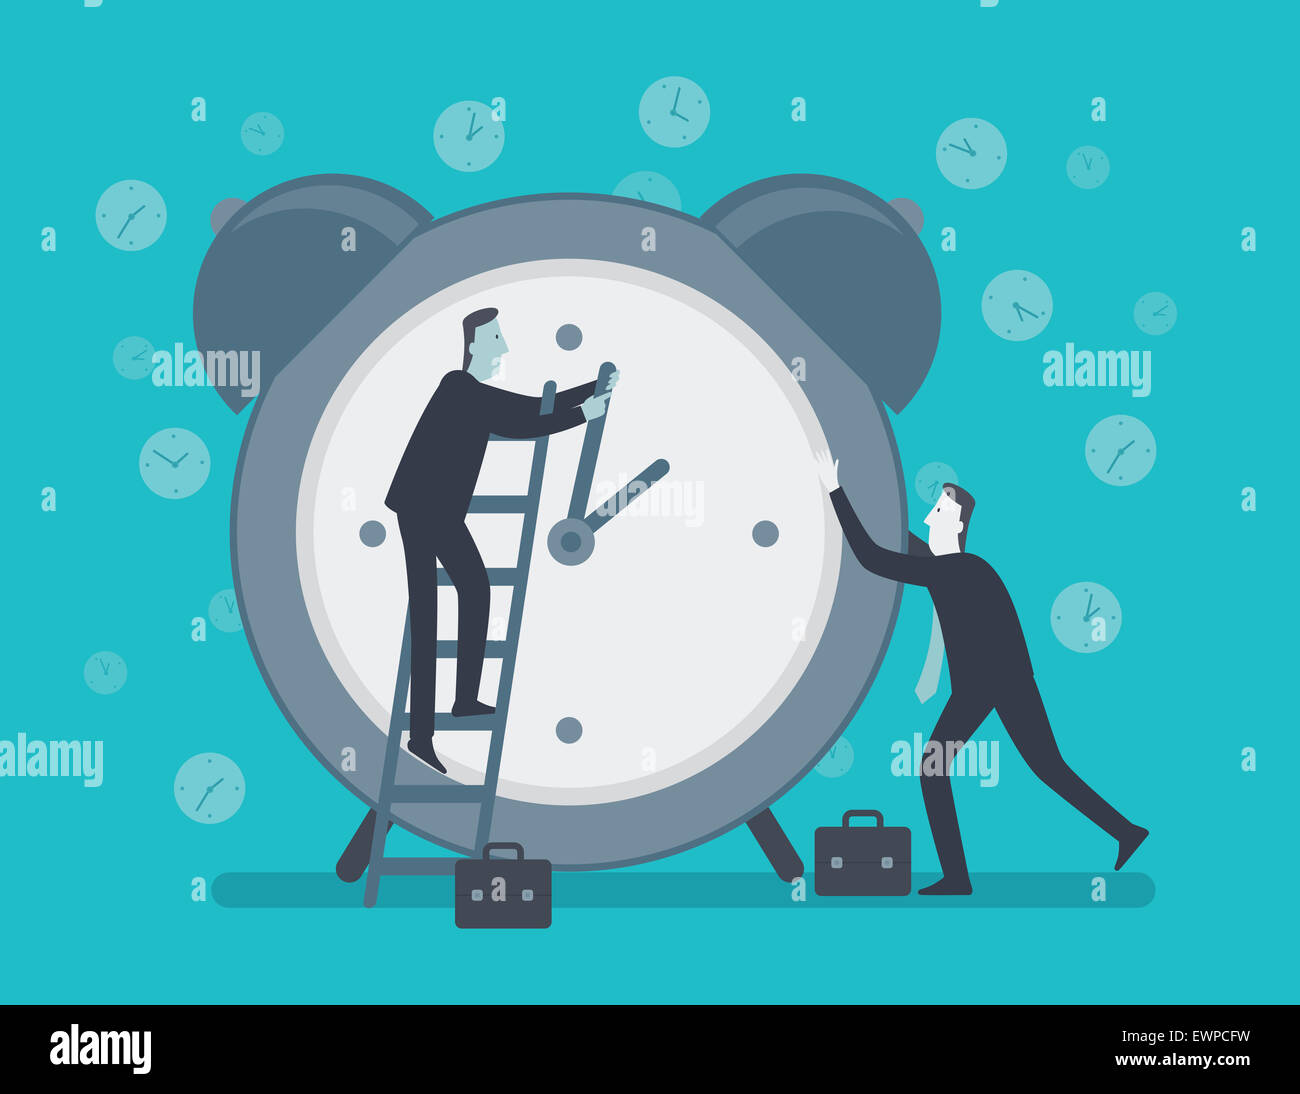 Conceptual image representing businessmen trying to stop time - Stock Image